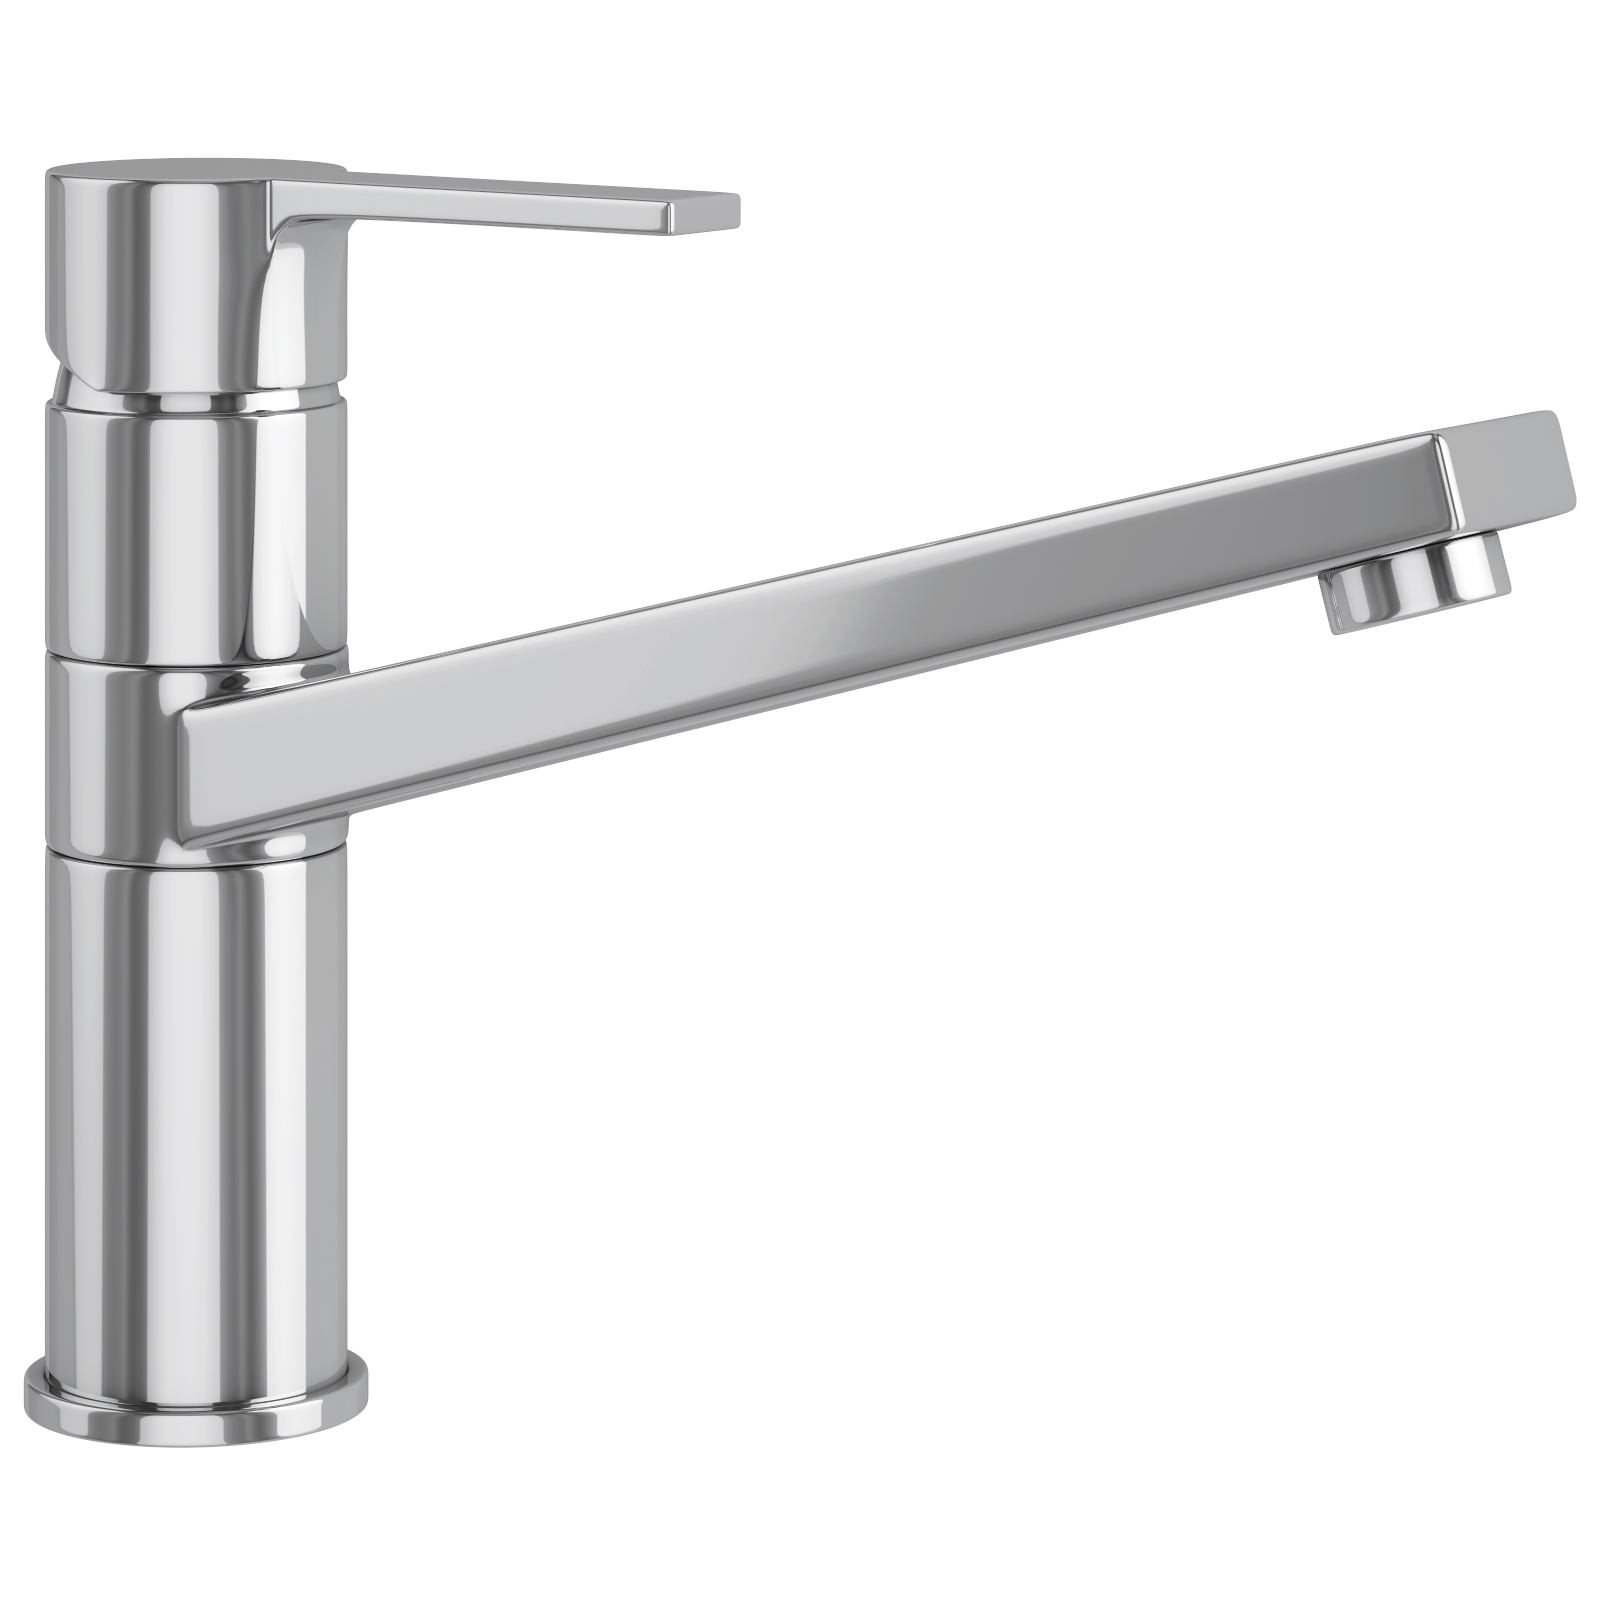 Franke Sink Mixer Taps : ... taps kitchen mixer taps franke star kitchen sink mixer tap chrome